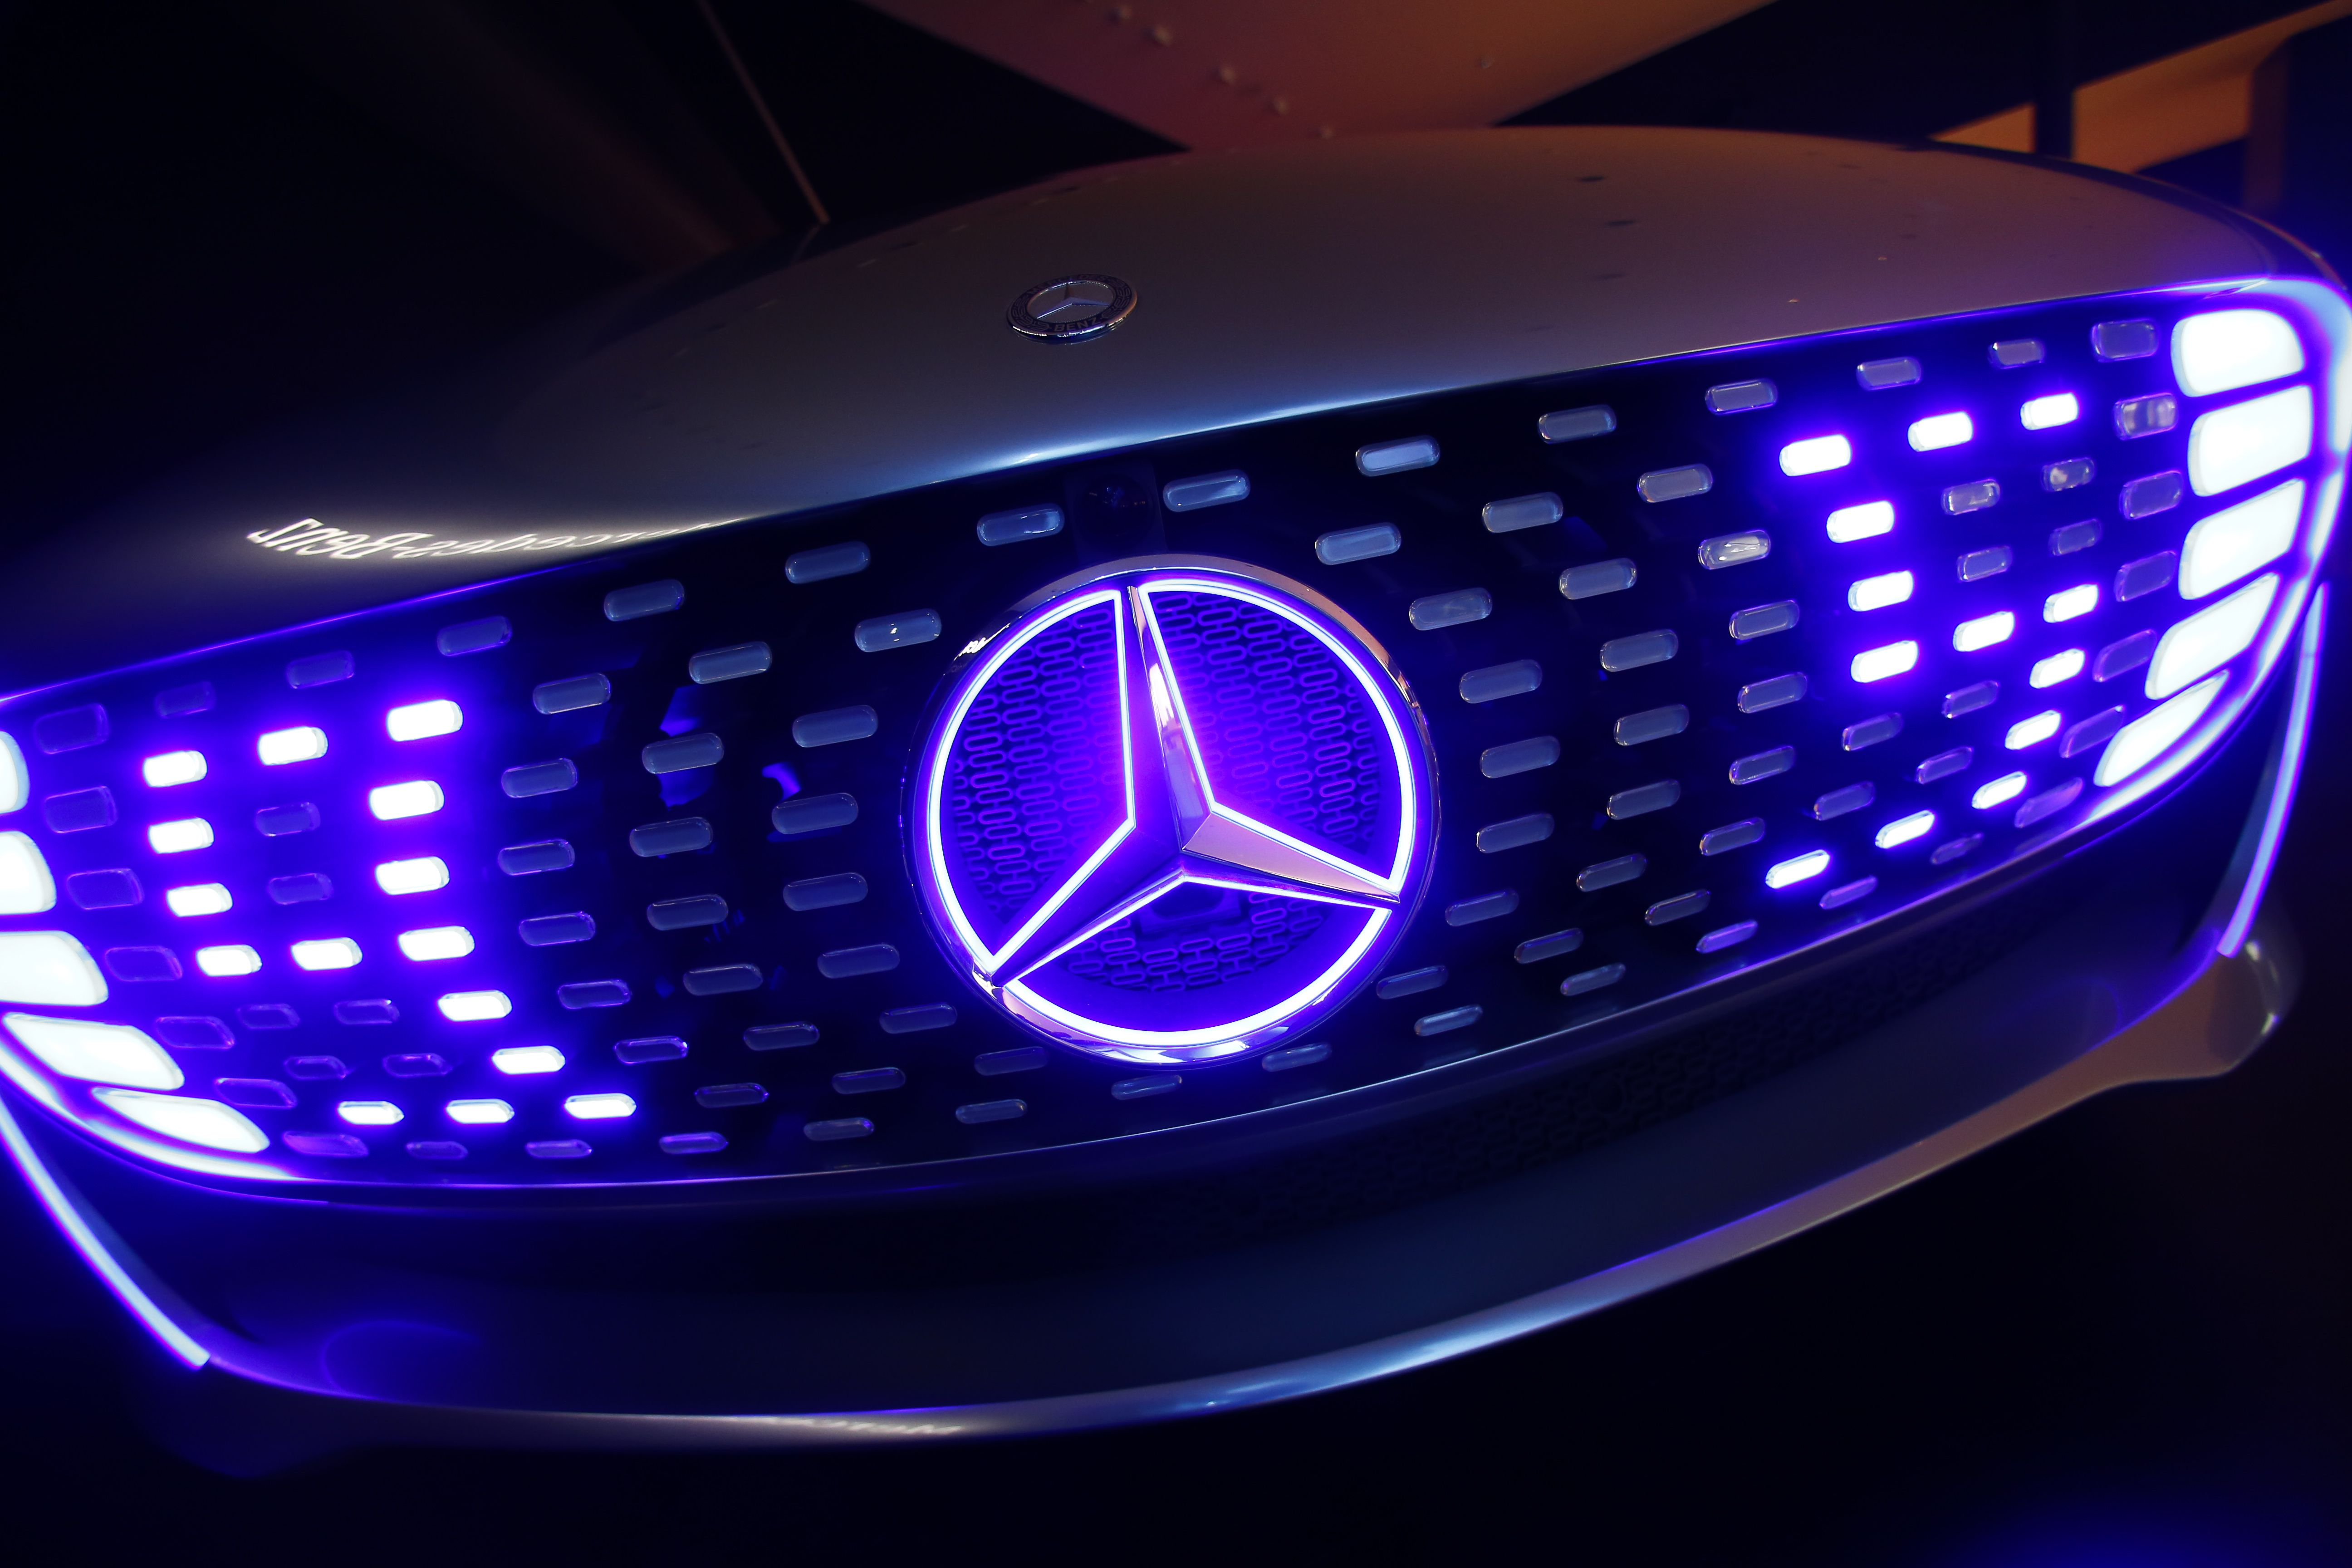 The front of a Mercedes-Benz F 015 Luxury in Motion concept car is pictured at the booth of Mercedes-Benz during the media day at the Frankfurt Motor Show (IAA) in Frankfurt, Germany, September 14, 2015. Flush with cash and confidence after years of rising sales, German carmakers are used to reaping industry-leading returns. But with Chinese demand abruptly slowing, the profit engine has begun to sputter, overshadowing the glitz of the world's biggest auto show which opens in Frankfurt.   REUTERS/Ralph Orlowski  - RTS10HH